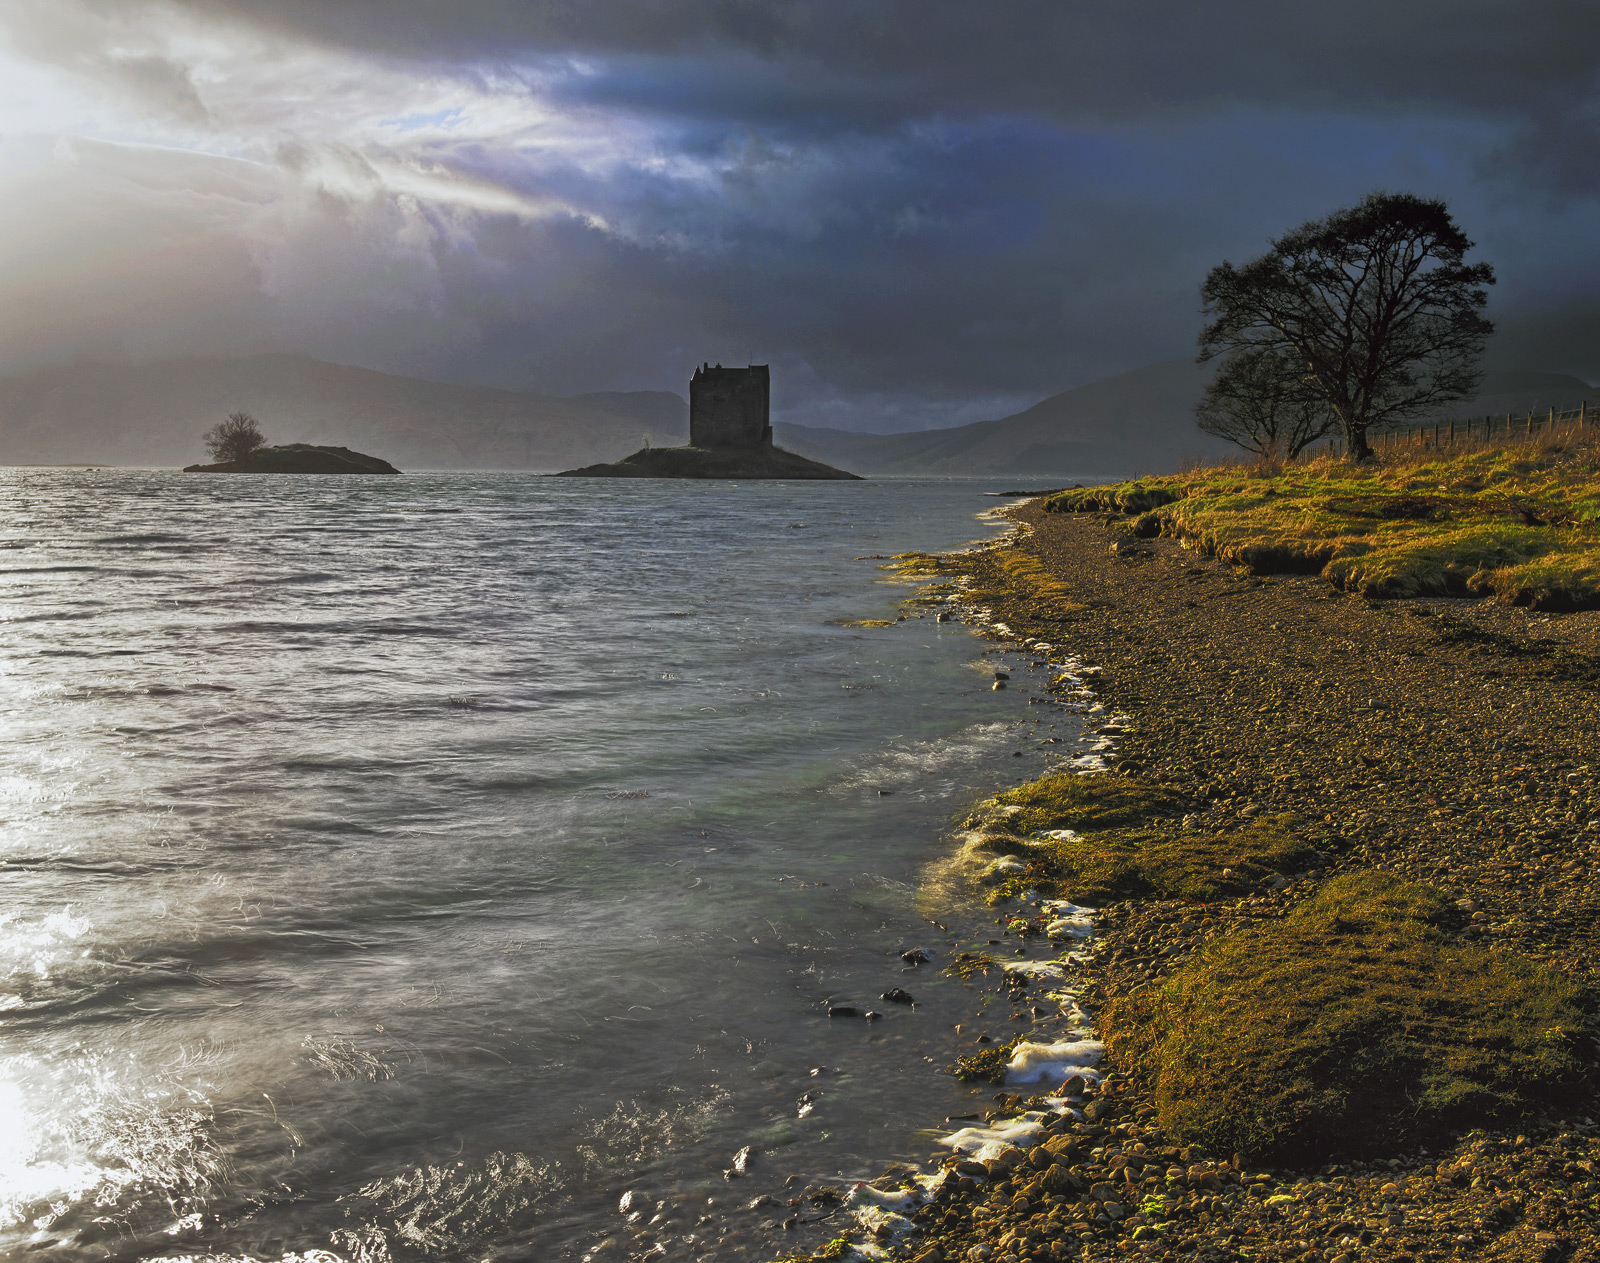 Wind and light screamed in below base clouds lighting the castle, the trees and the immediate foreshore with intense butter coloured...